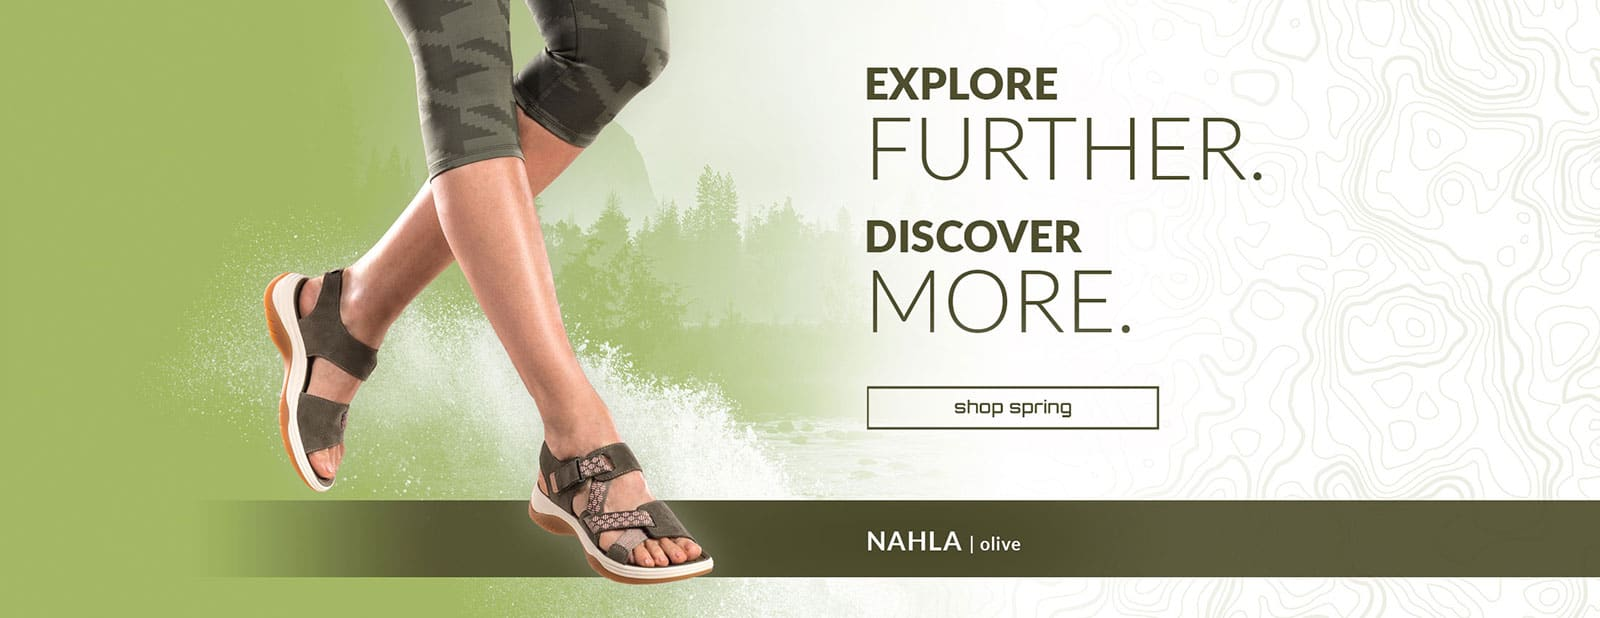 0698eb529ce0 Explore Further. Discover more. Shop spring. Nahla Sandal in olive.